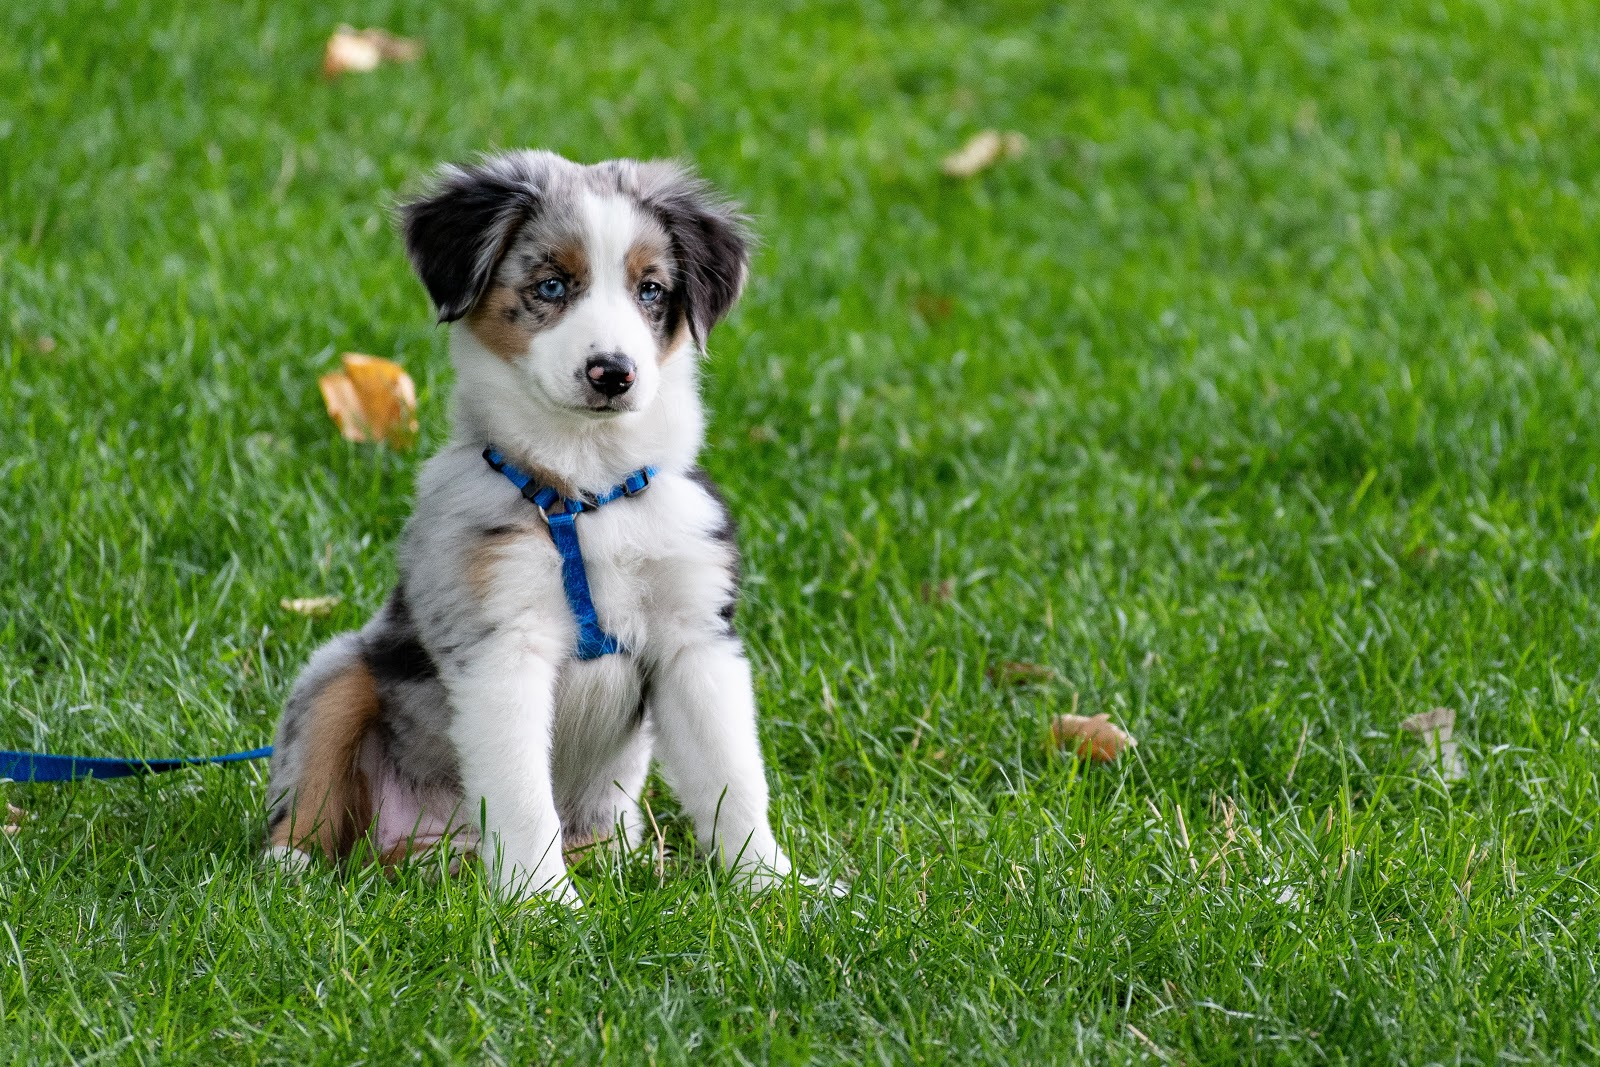 puppy-on-grass-field-dog-pictures